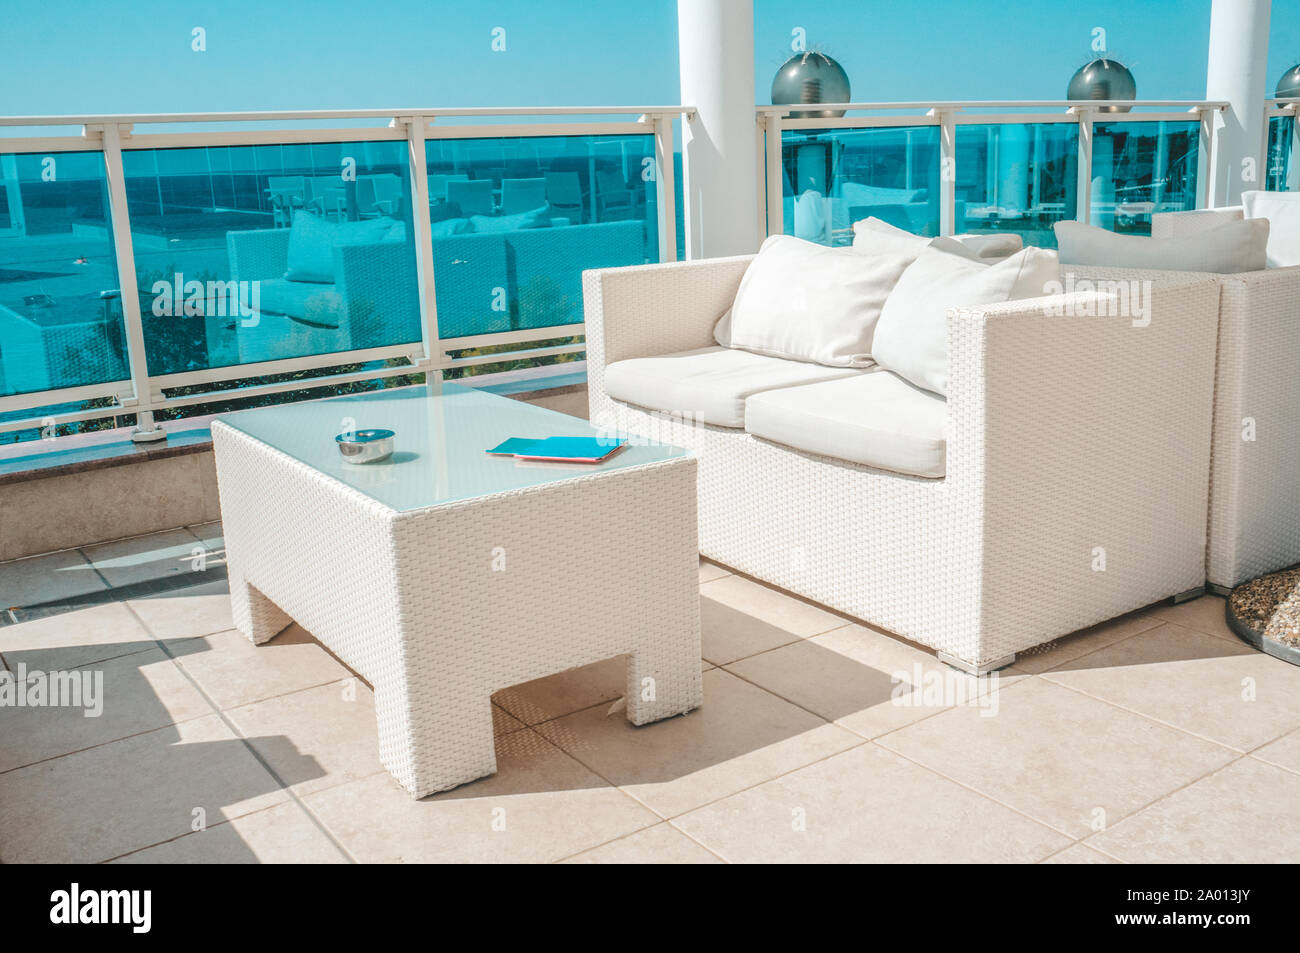 White Outdoor Furniture Soft Sofas And Rattan Chairs With Cushions And A Table With A Glass Top Place To Relax On The Terrace Of The Resort Stock Photo Alamy